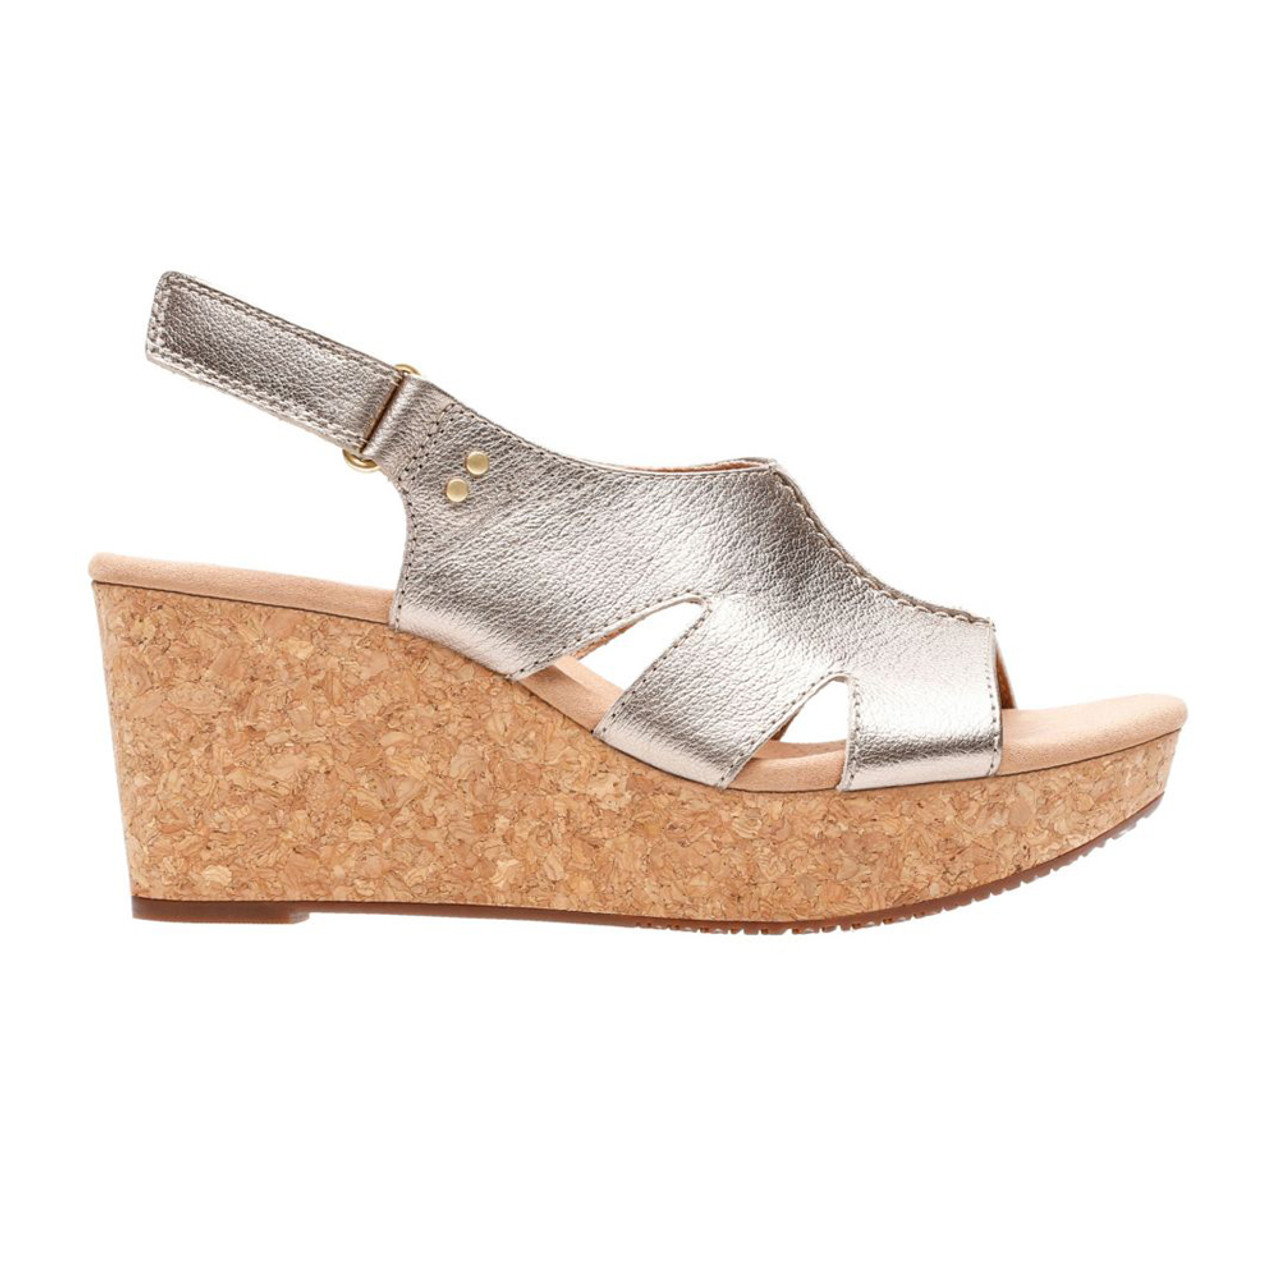 74f71fb5205 Clarks Women s Annadel Bari Wedge Sandal Gold Metallic - Shop now    Shoolu.com